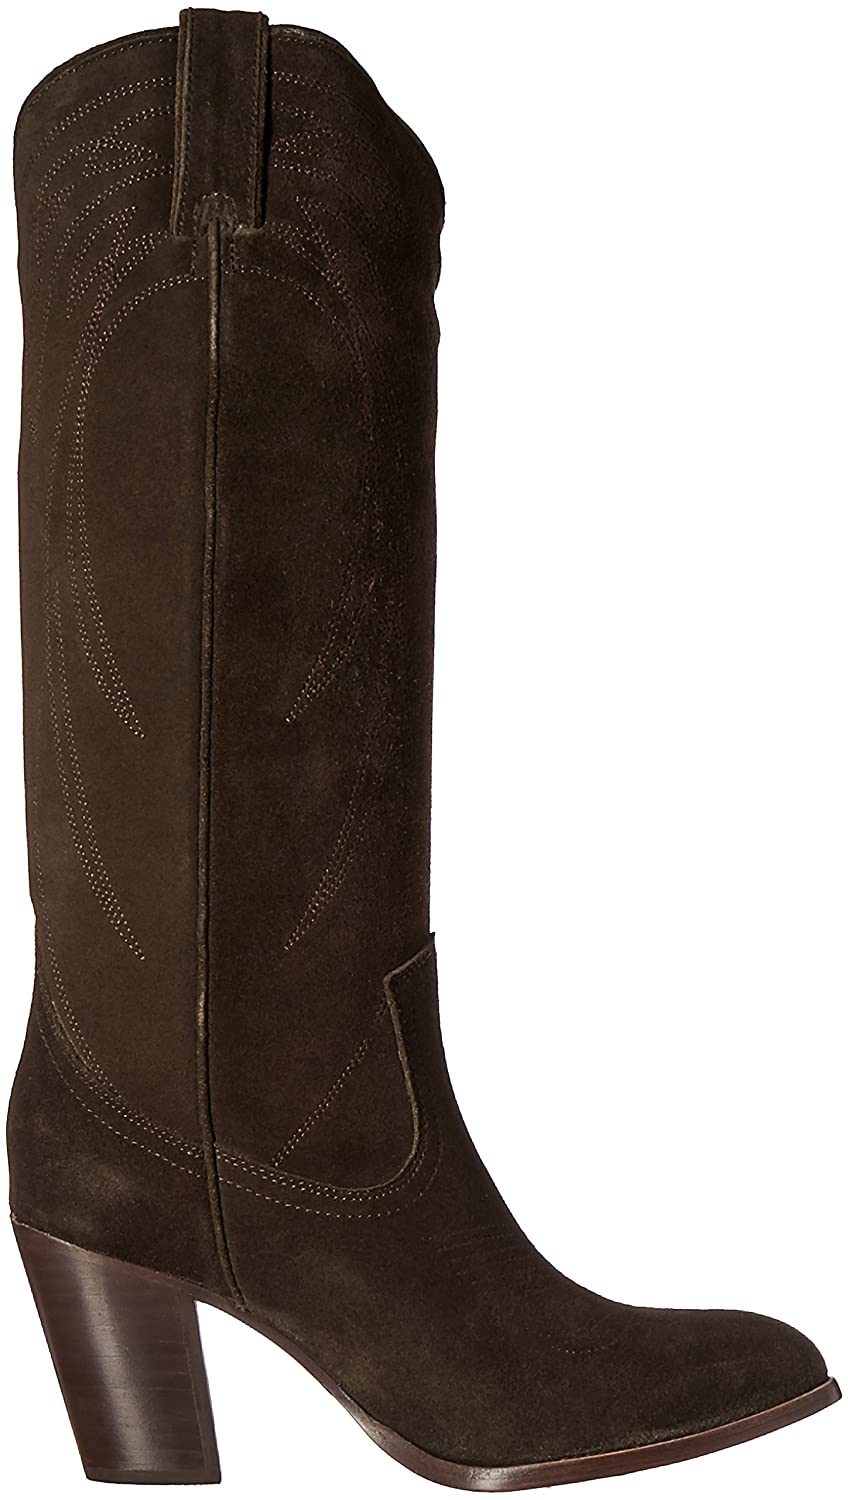 FRYE Women's Ilana B0192DBV9O Pull on Western Boot B0192DBV9O Ilana 5.5 B(M) US|Fatigue 84d5d0